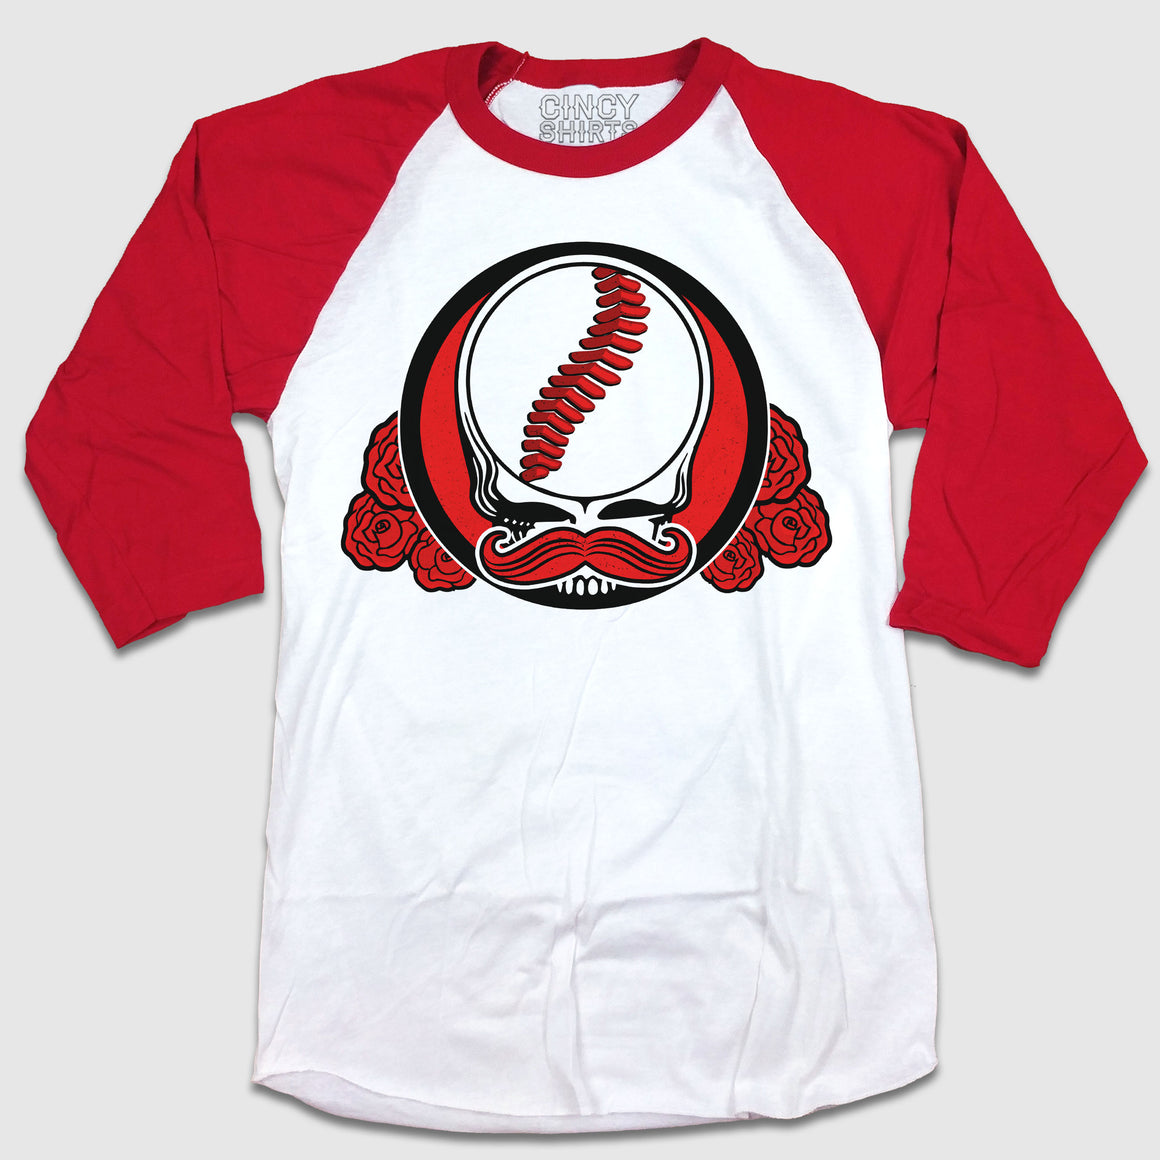 Mr. Dead Red - Grateful Dead Cincy Baseball raglan red